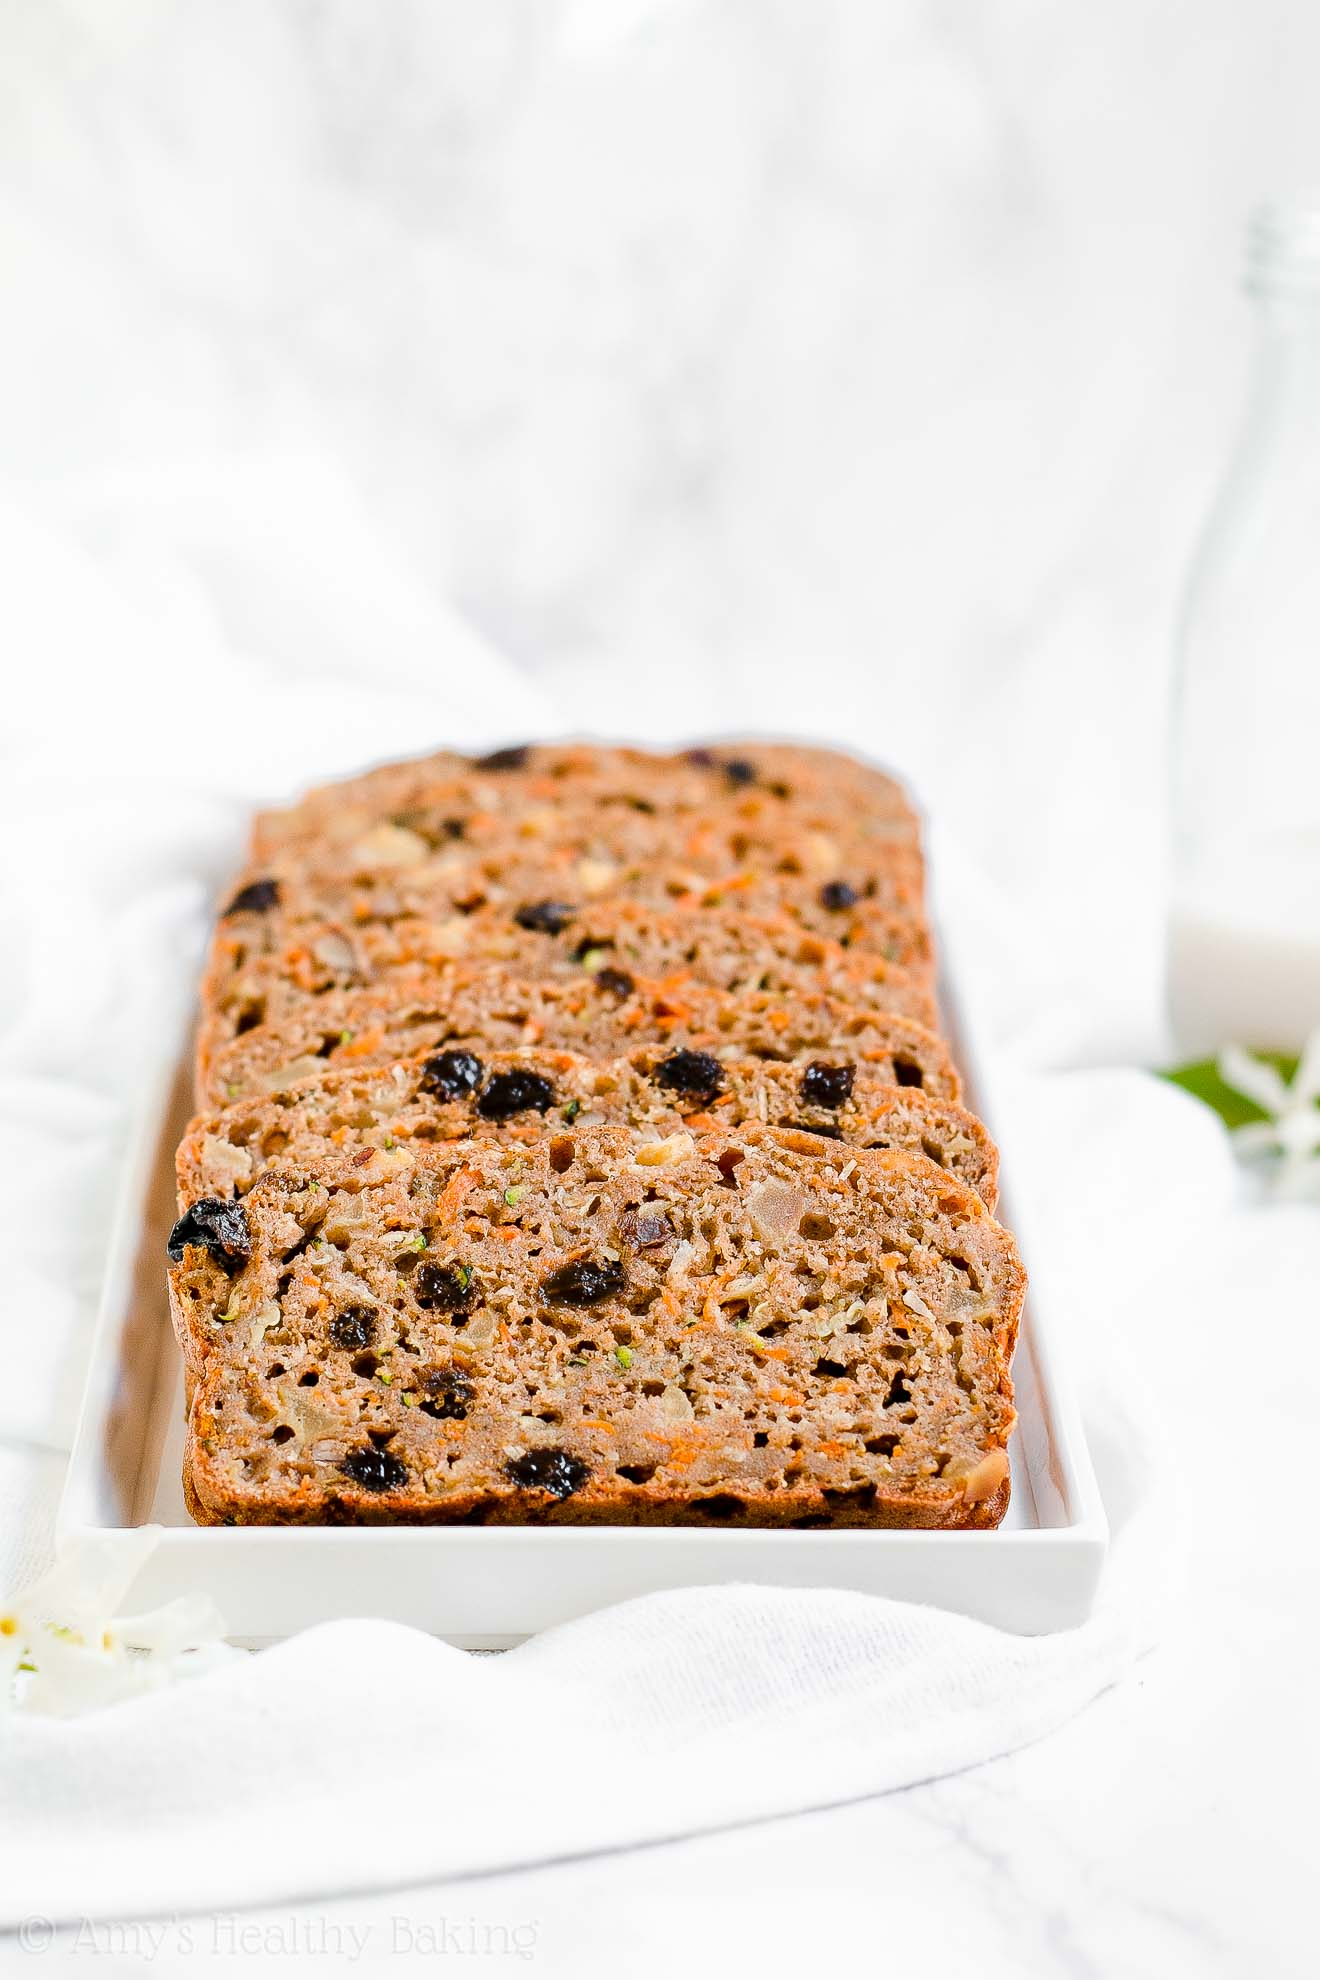 Moist Healthy Morning Glory Zucchini Bread with no sugar